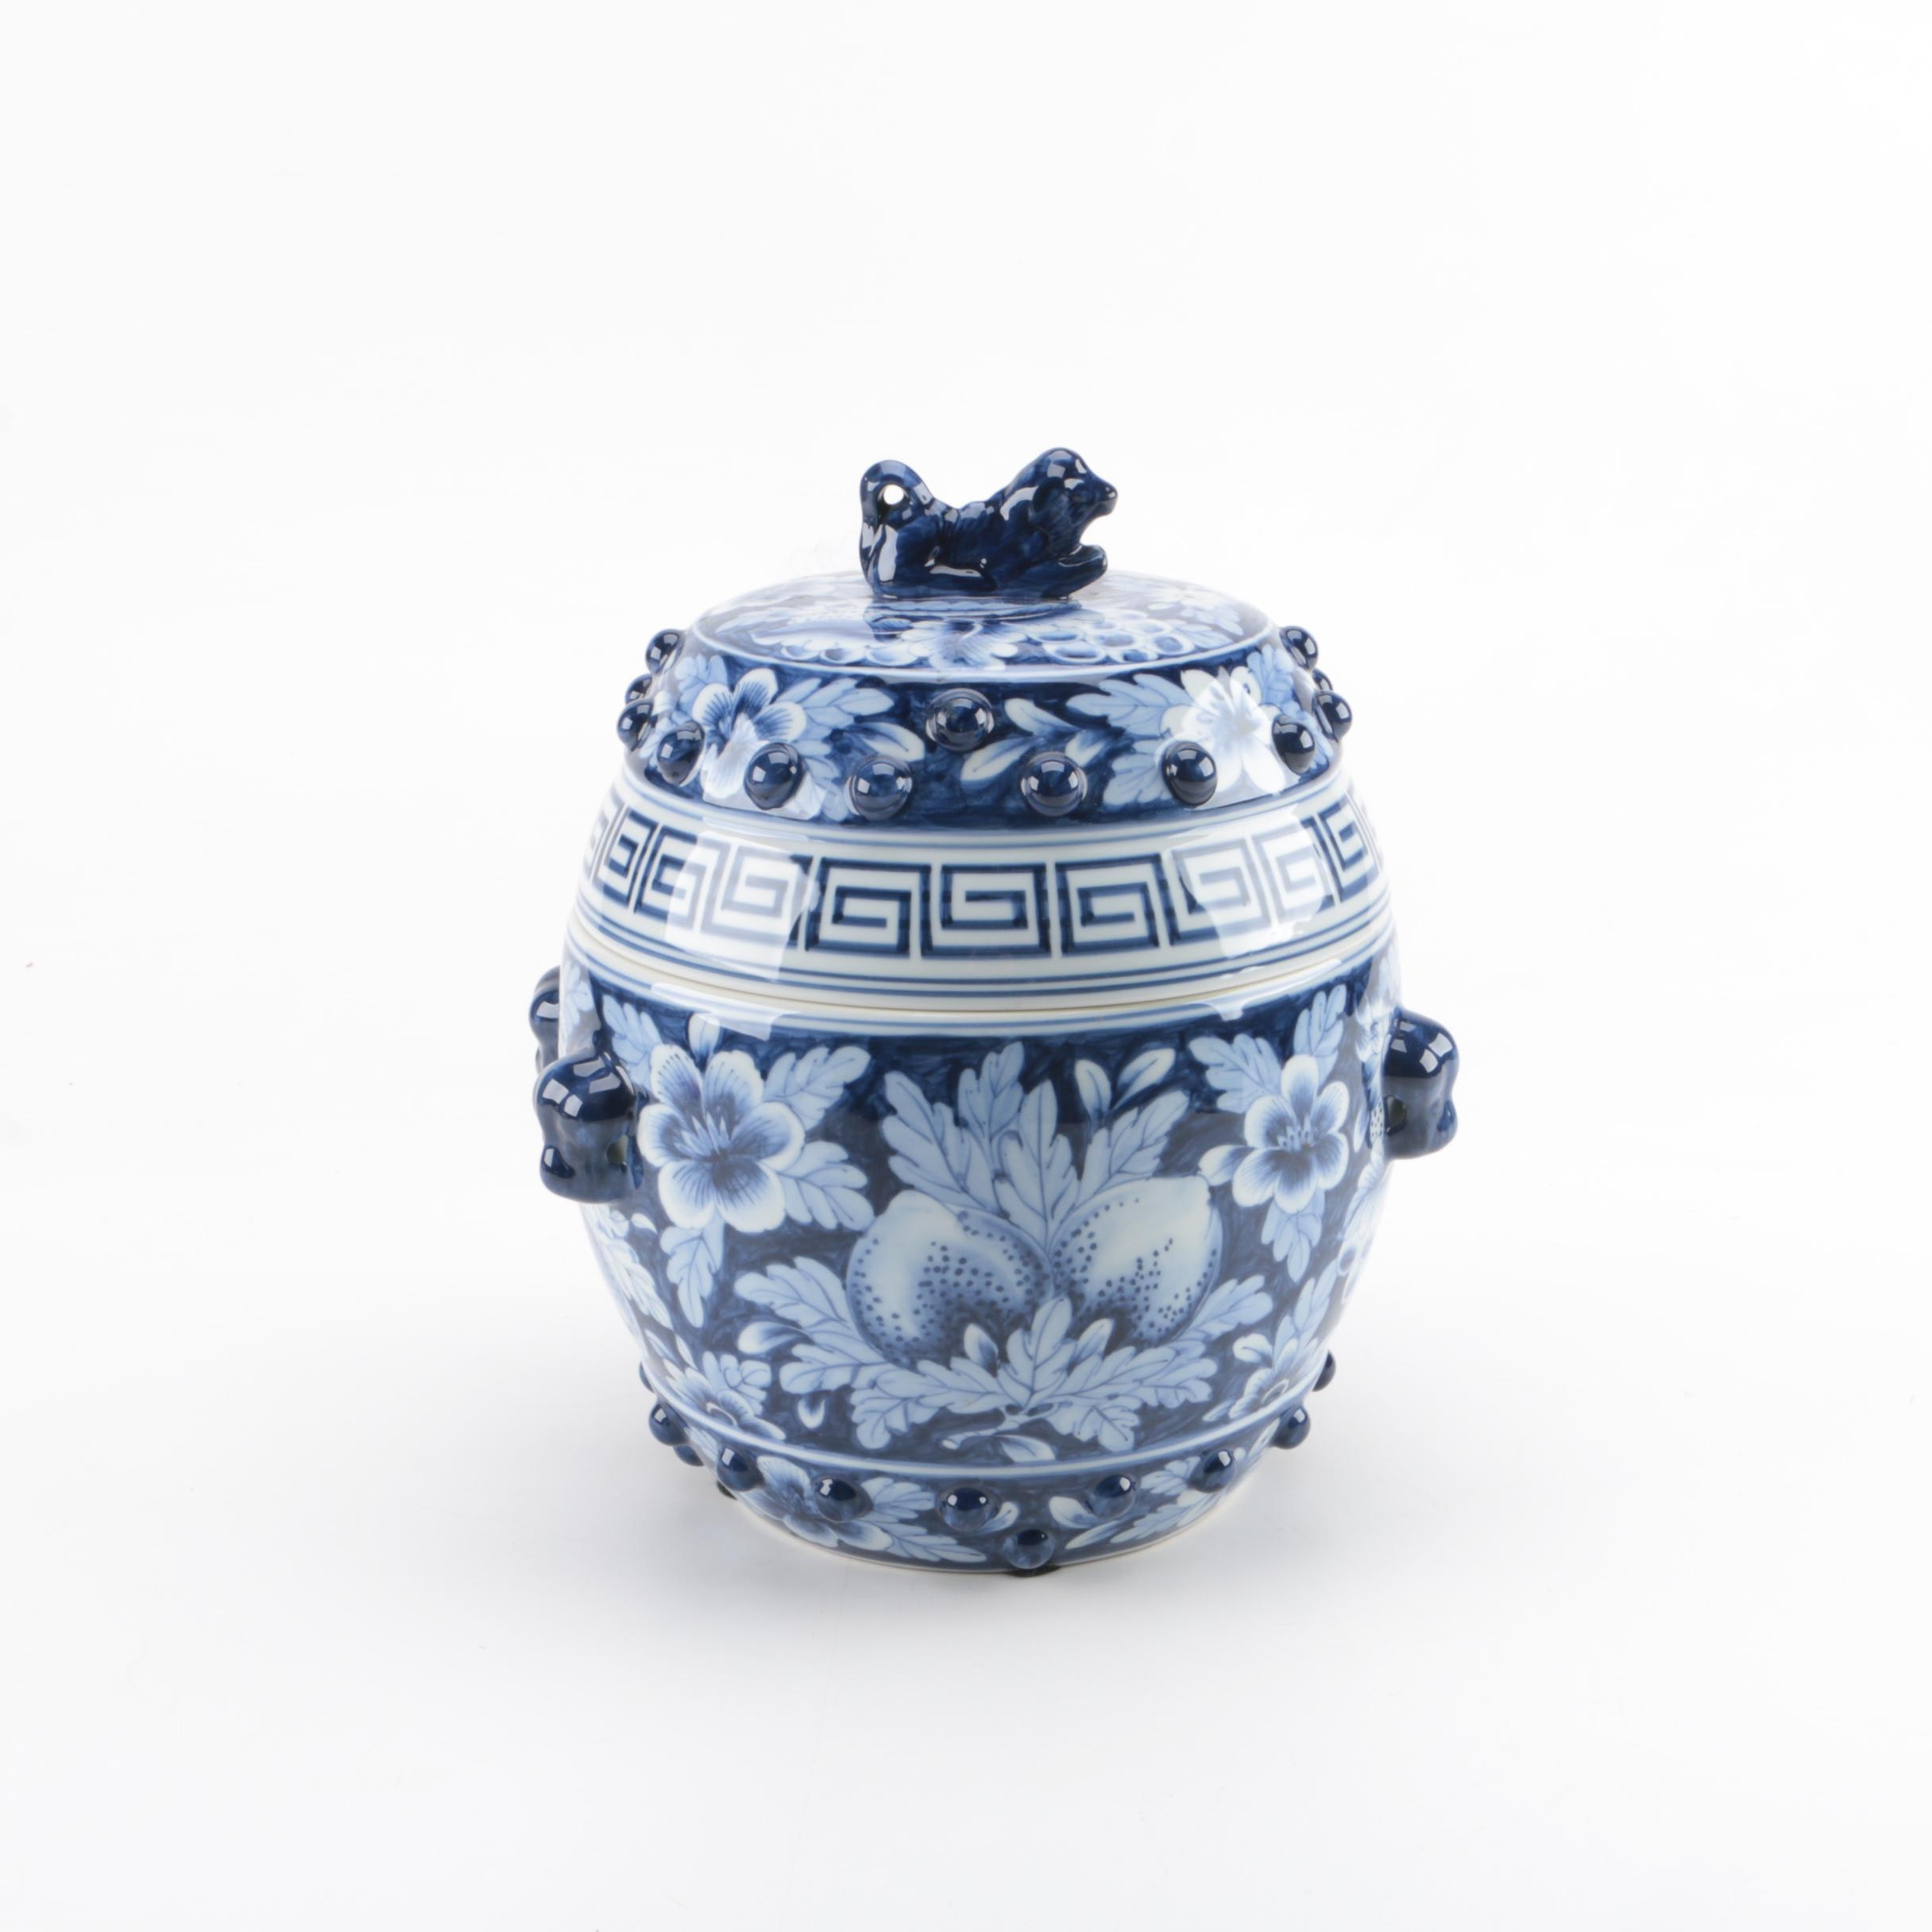 East Asian Inspired Blue and White Ceramic Lidded Jar